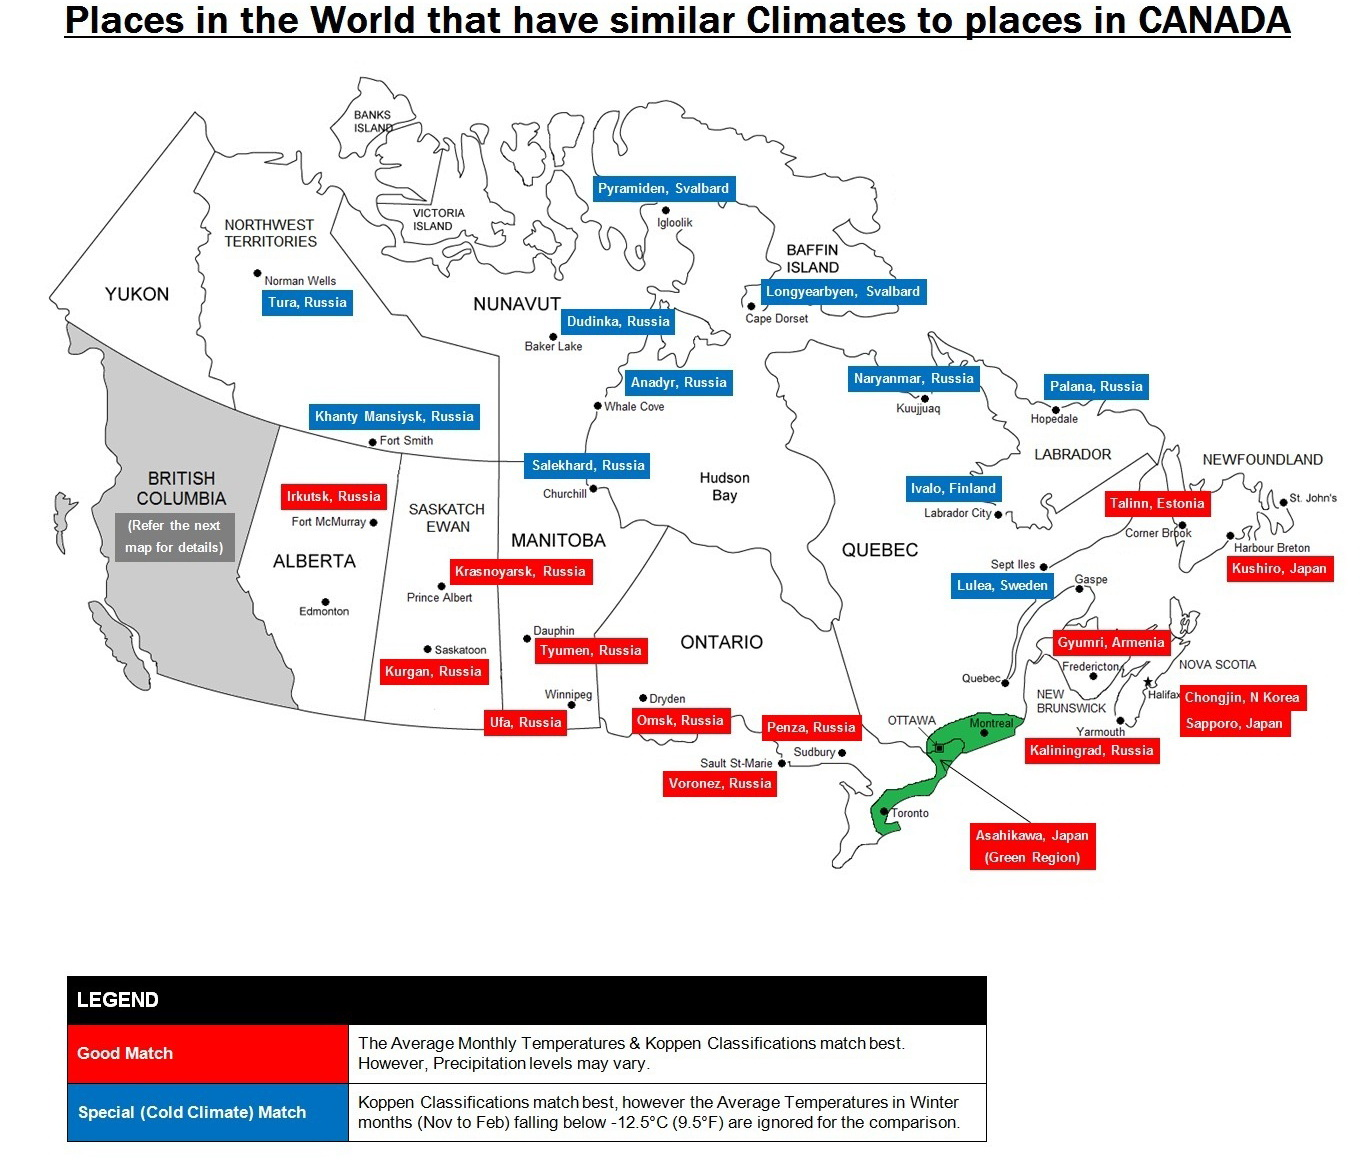 Places in the World that have similar climates to places in Canada